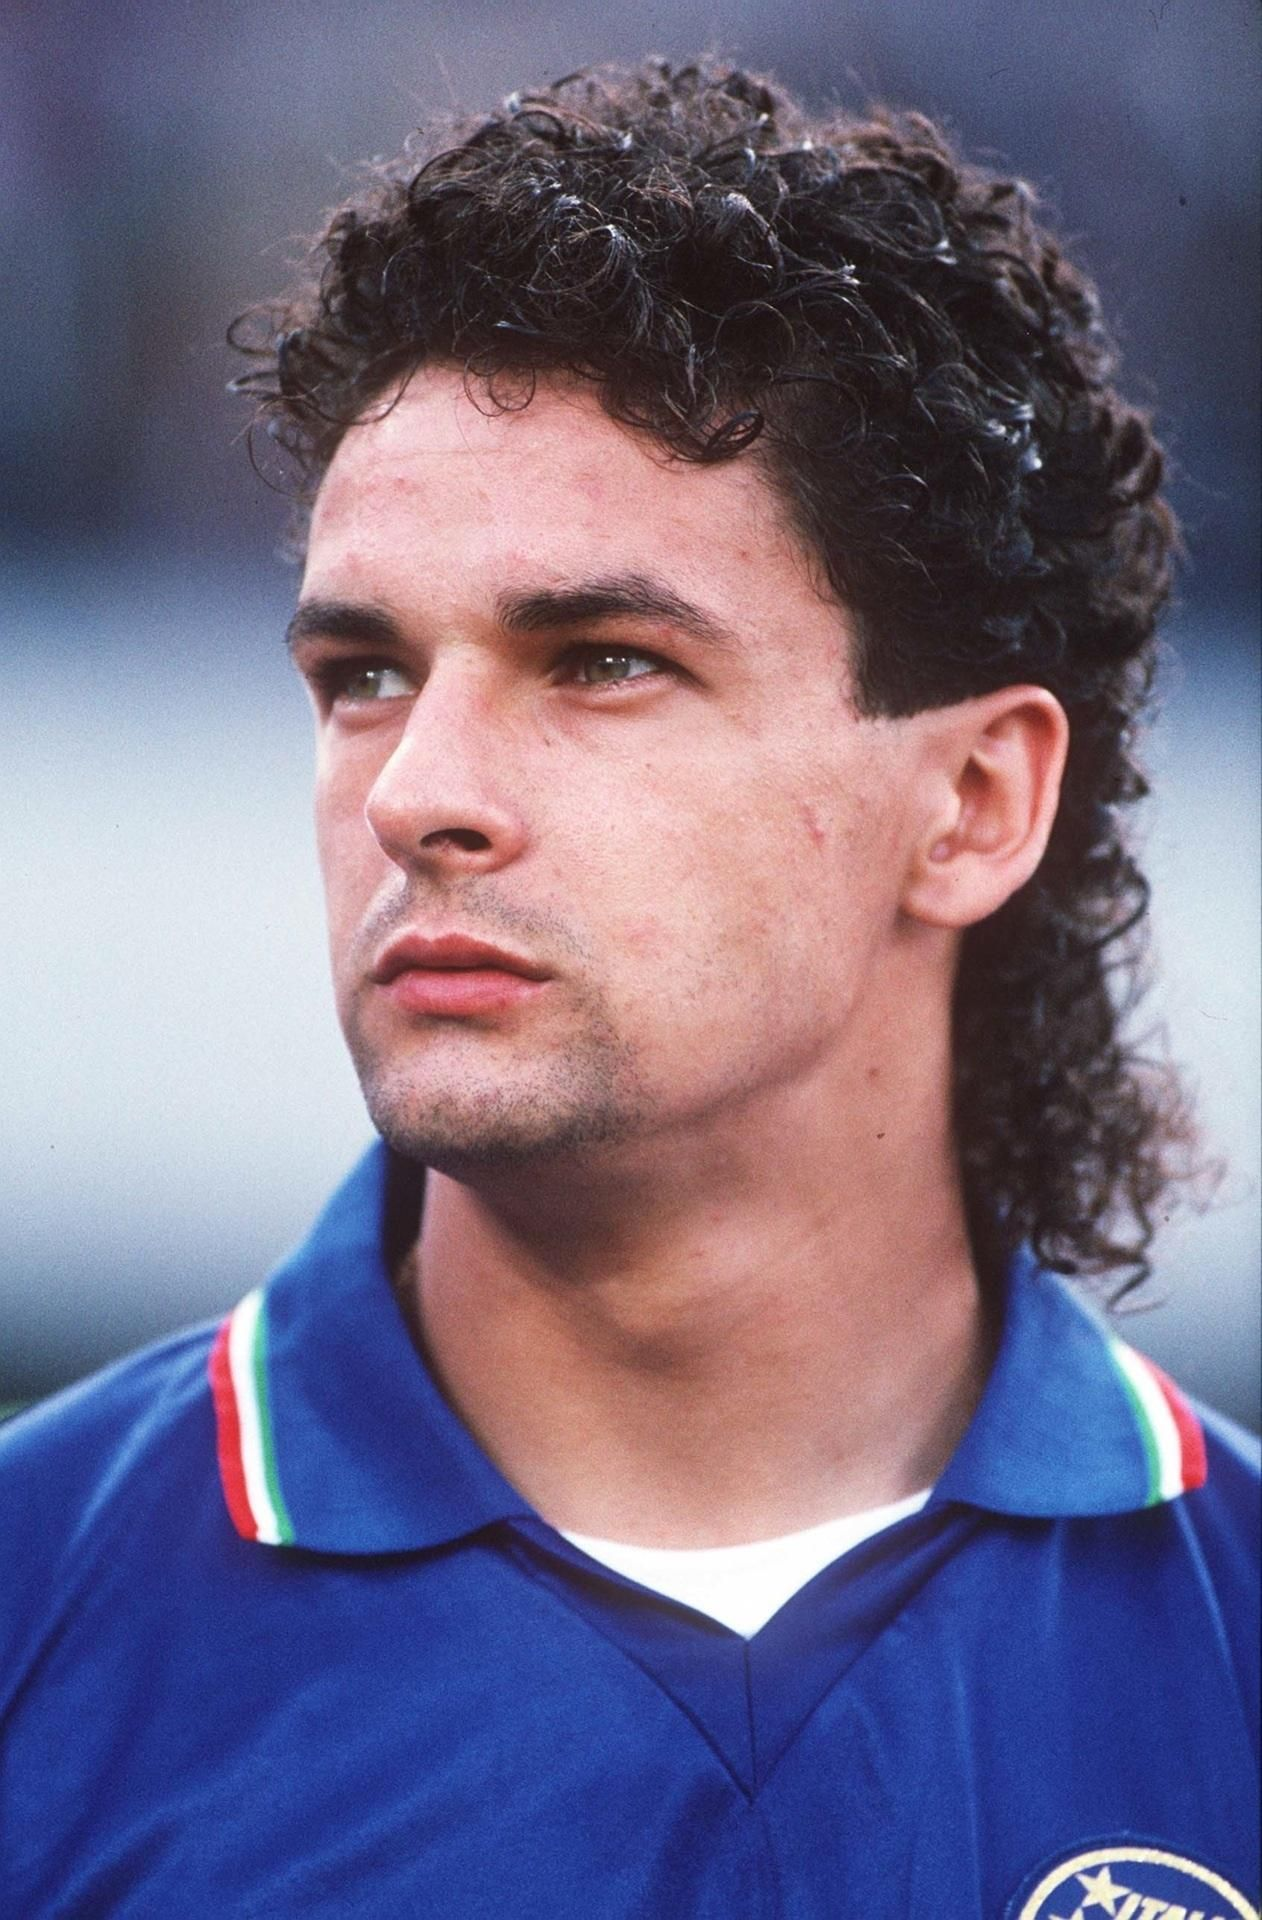 roberto baggio. | world football icon | roberto baggio